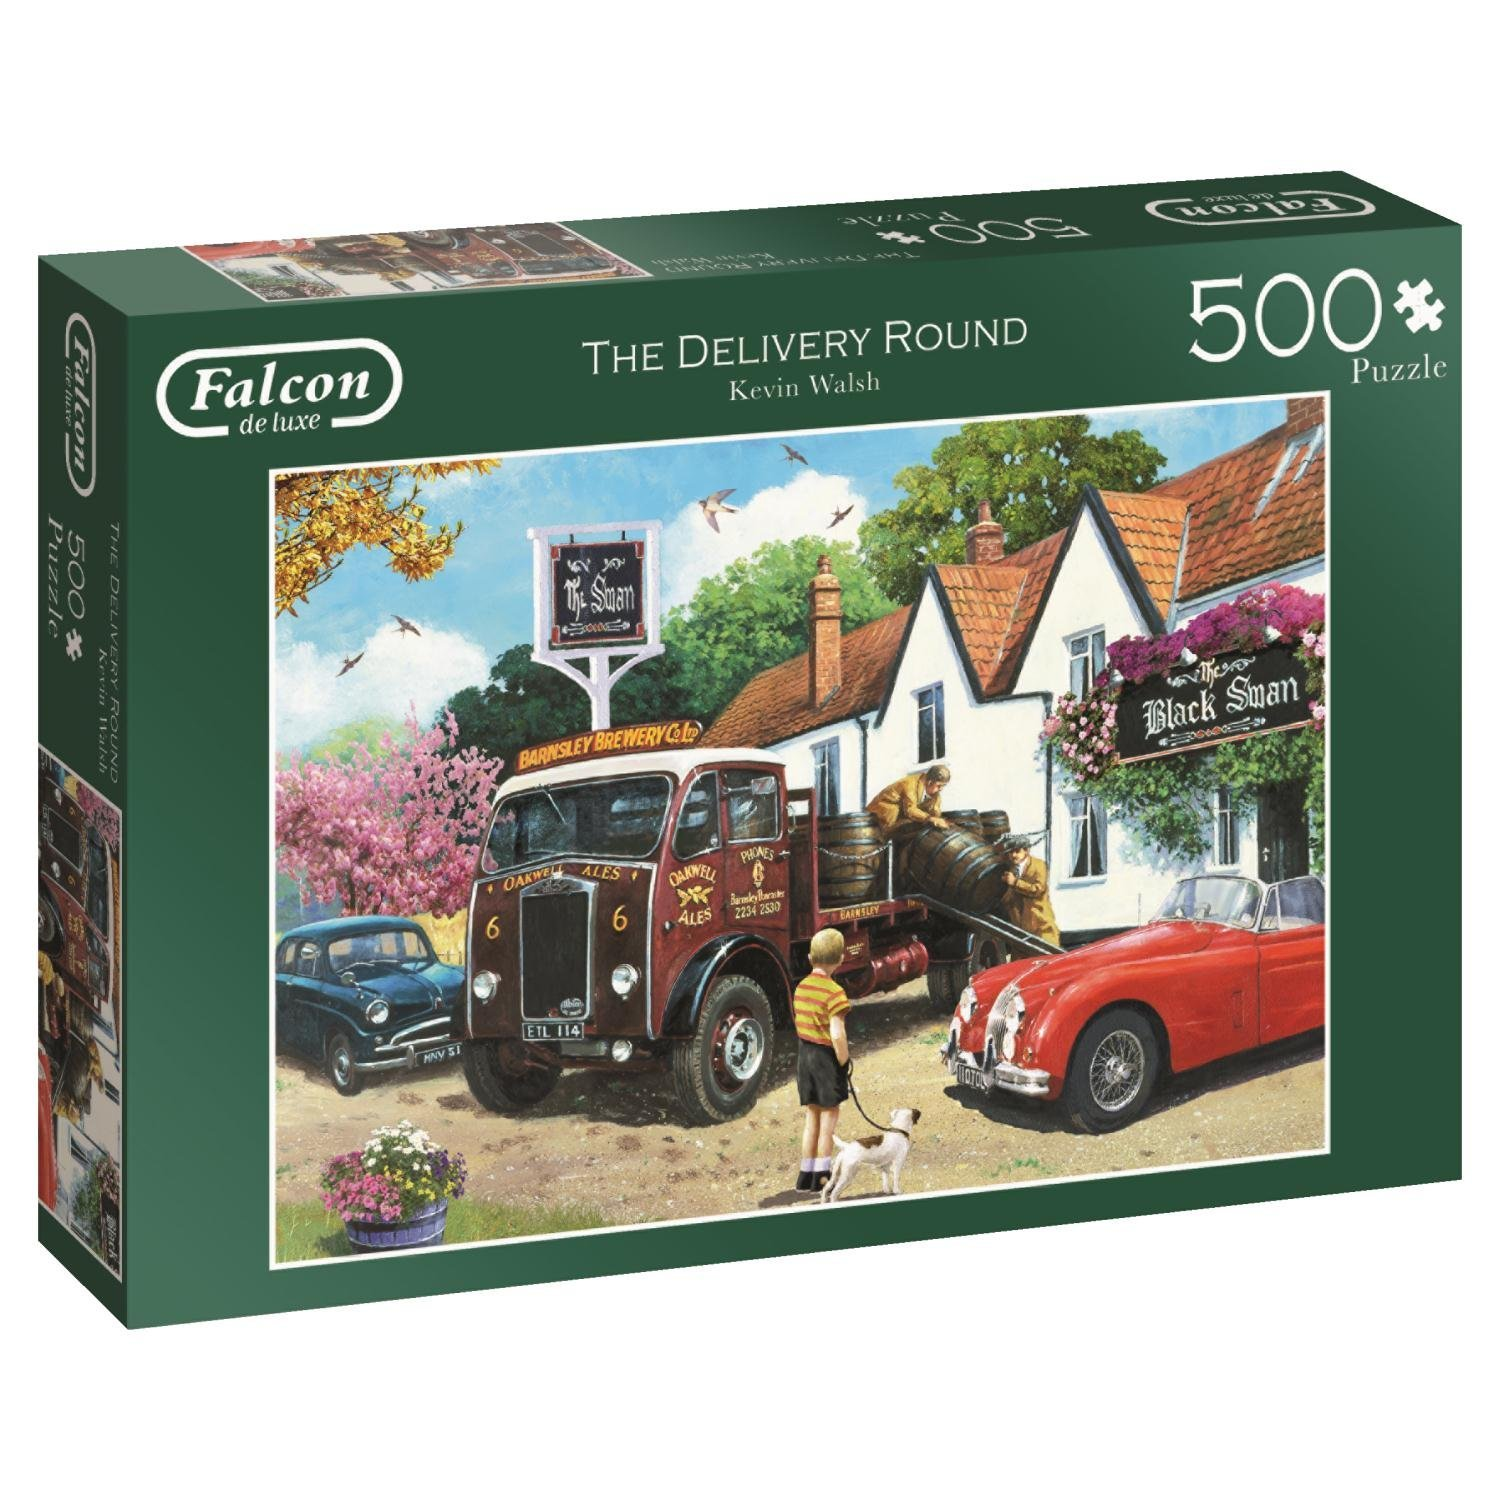 Falcon de luxe, The Delivery Round, Jumbo Jigsaw Puzzle 500pc